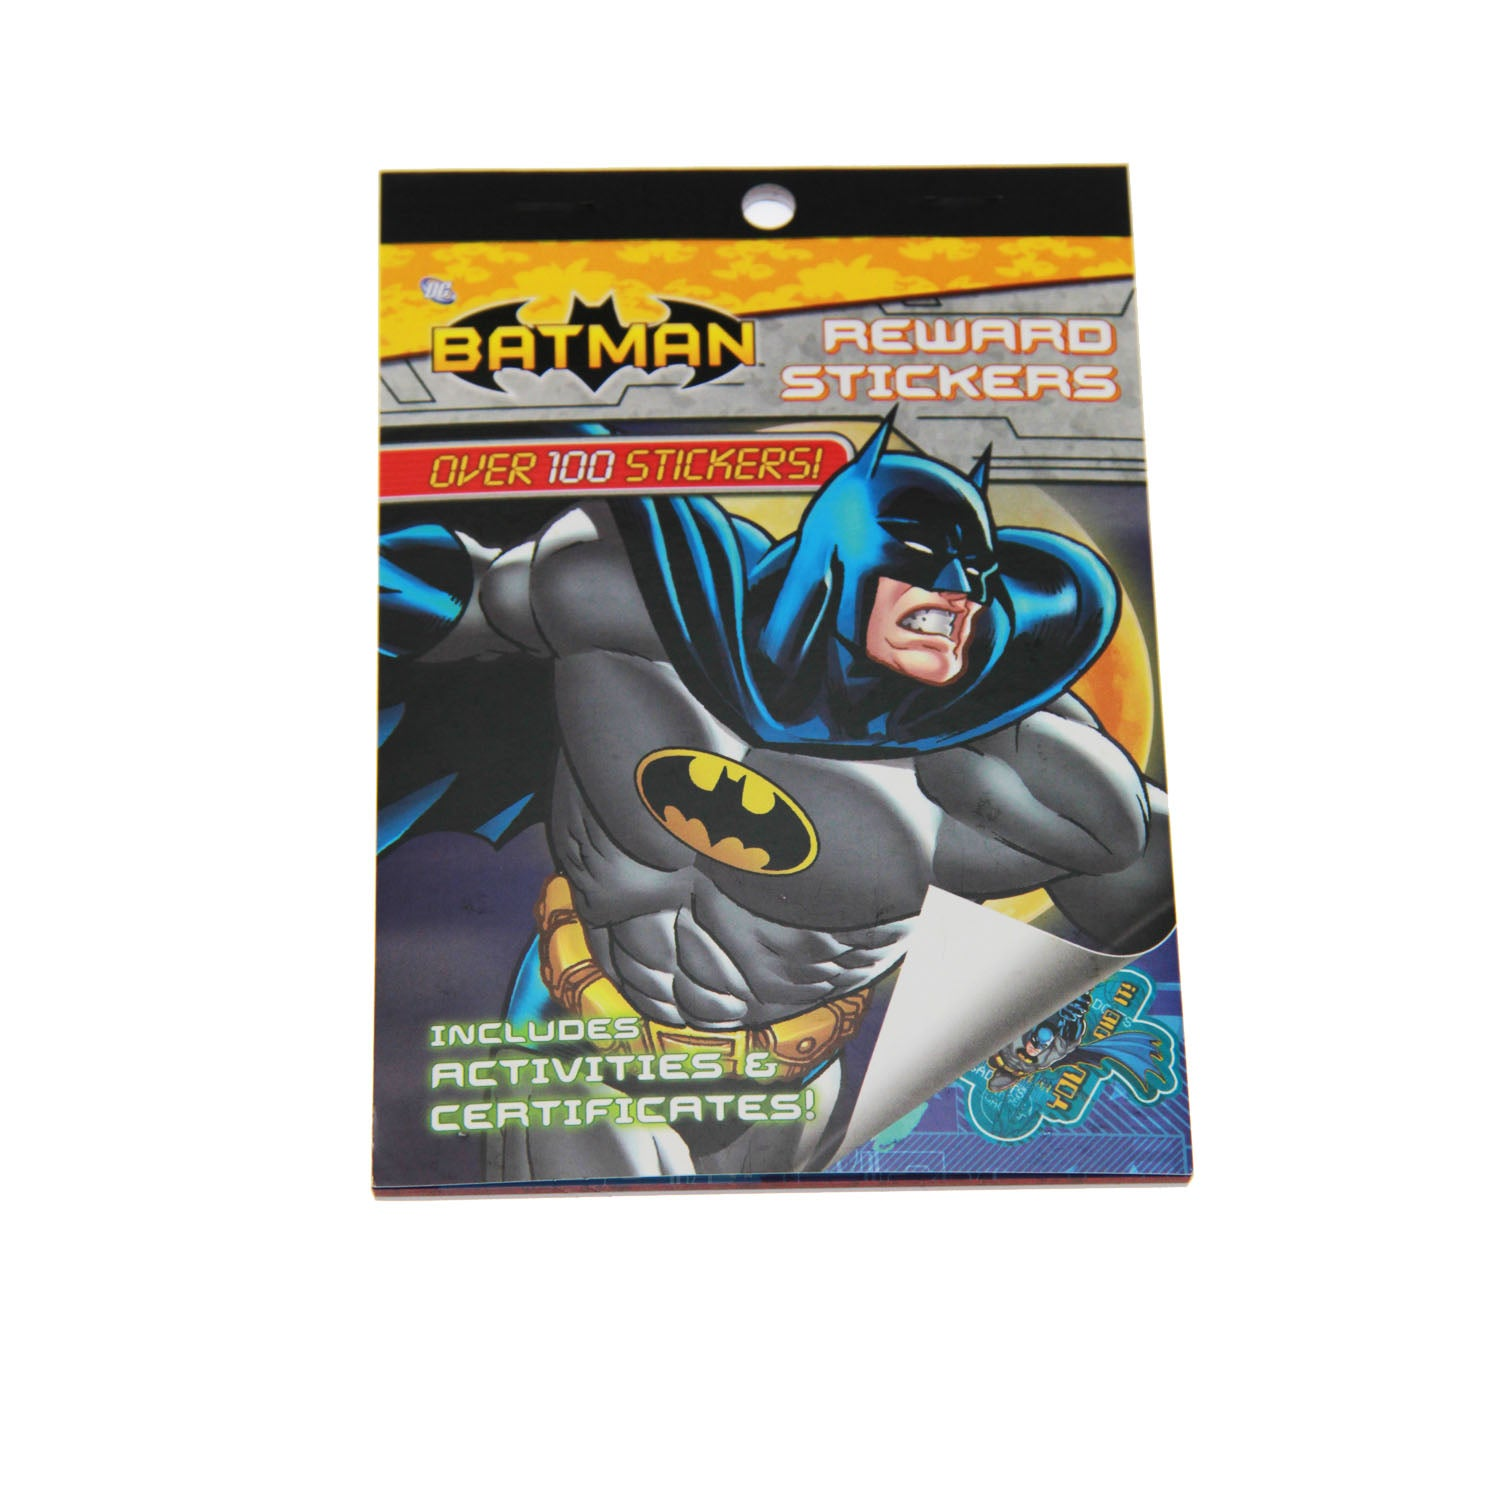 Batman Party Supplies - Reward Stickers book